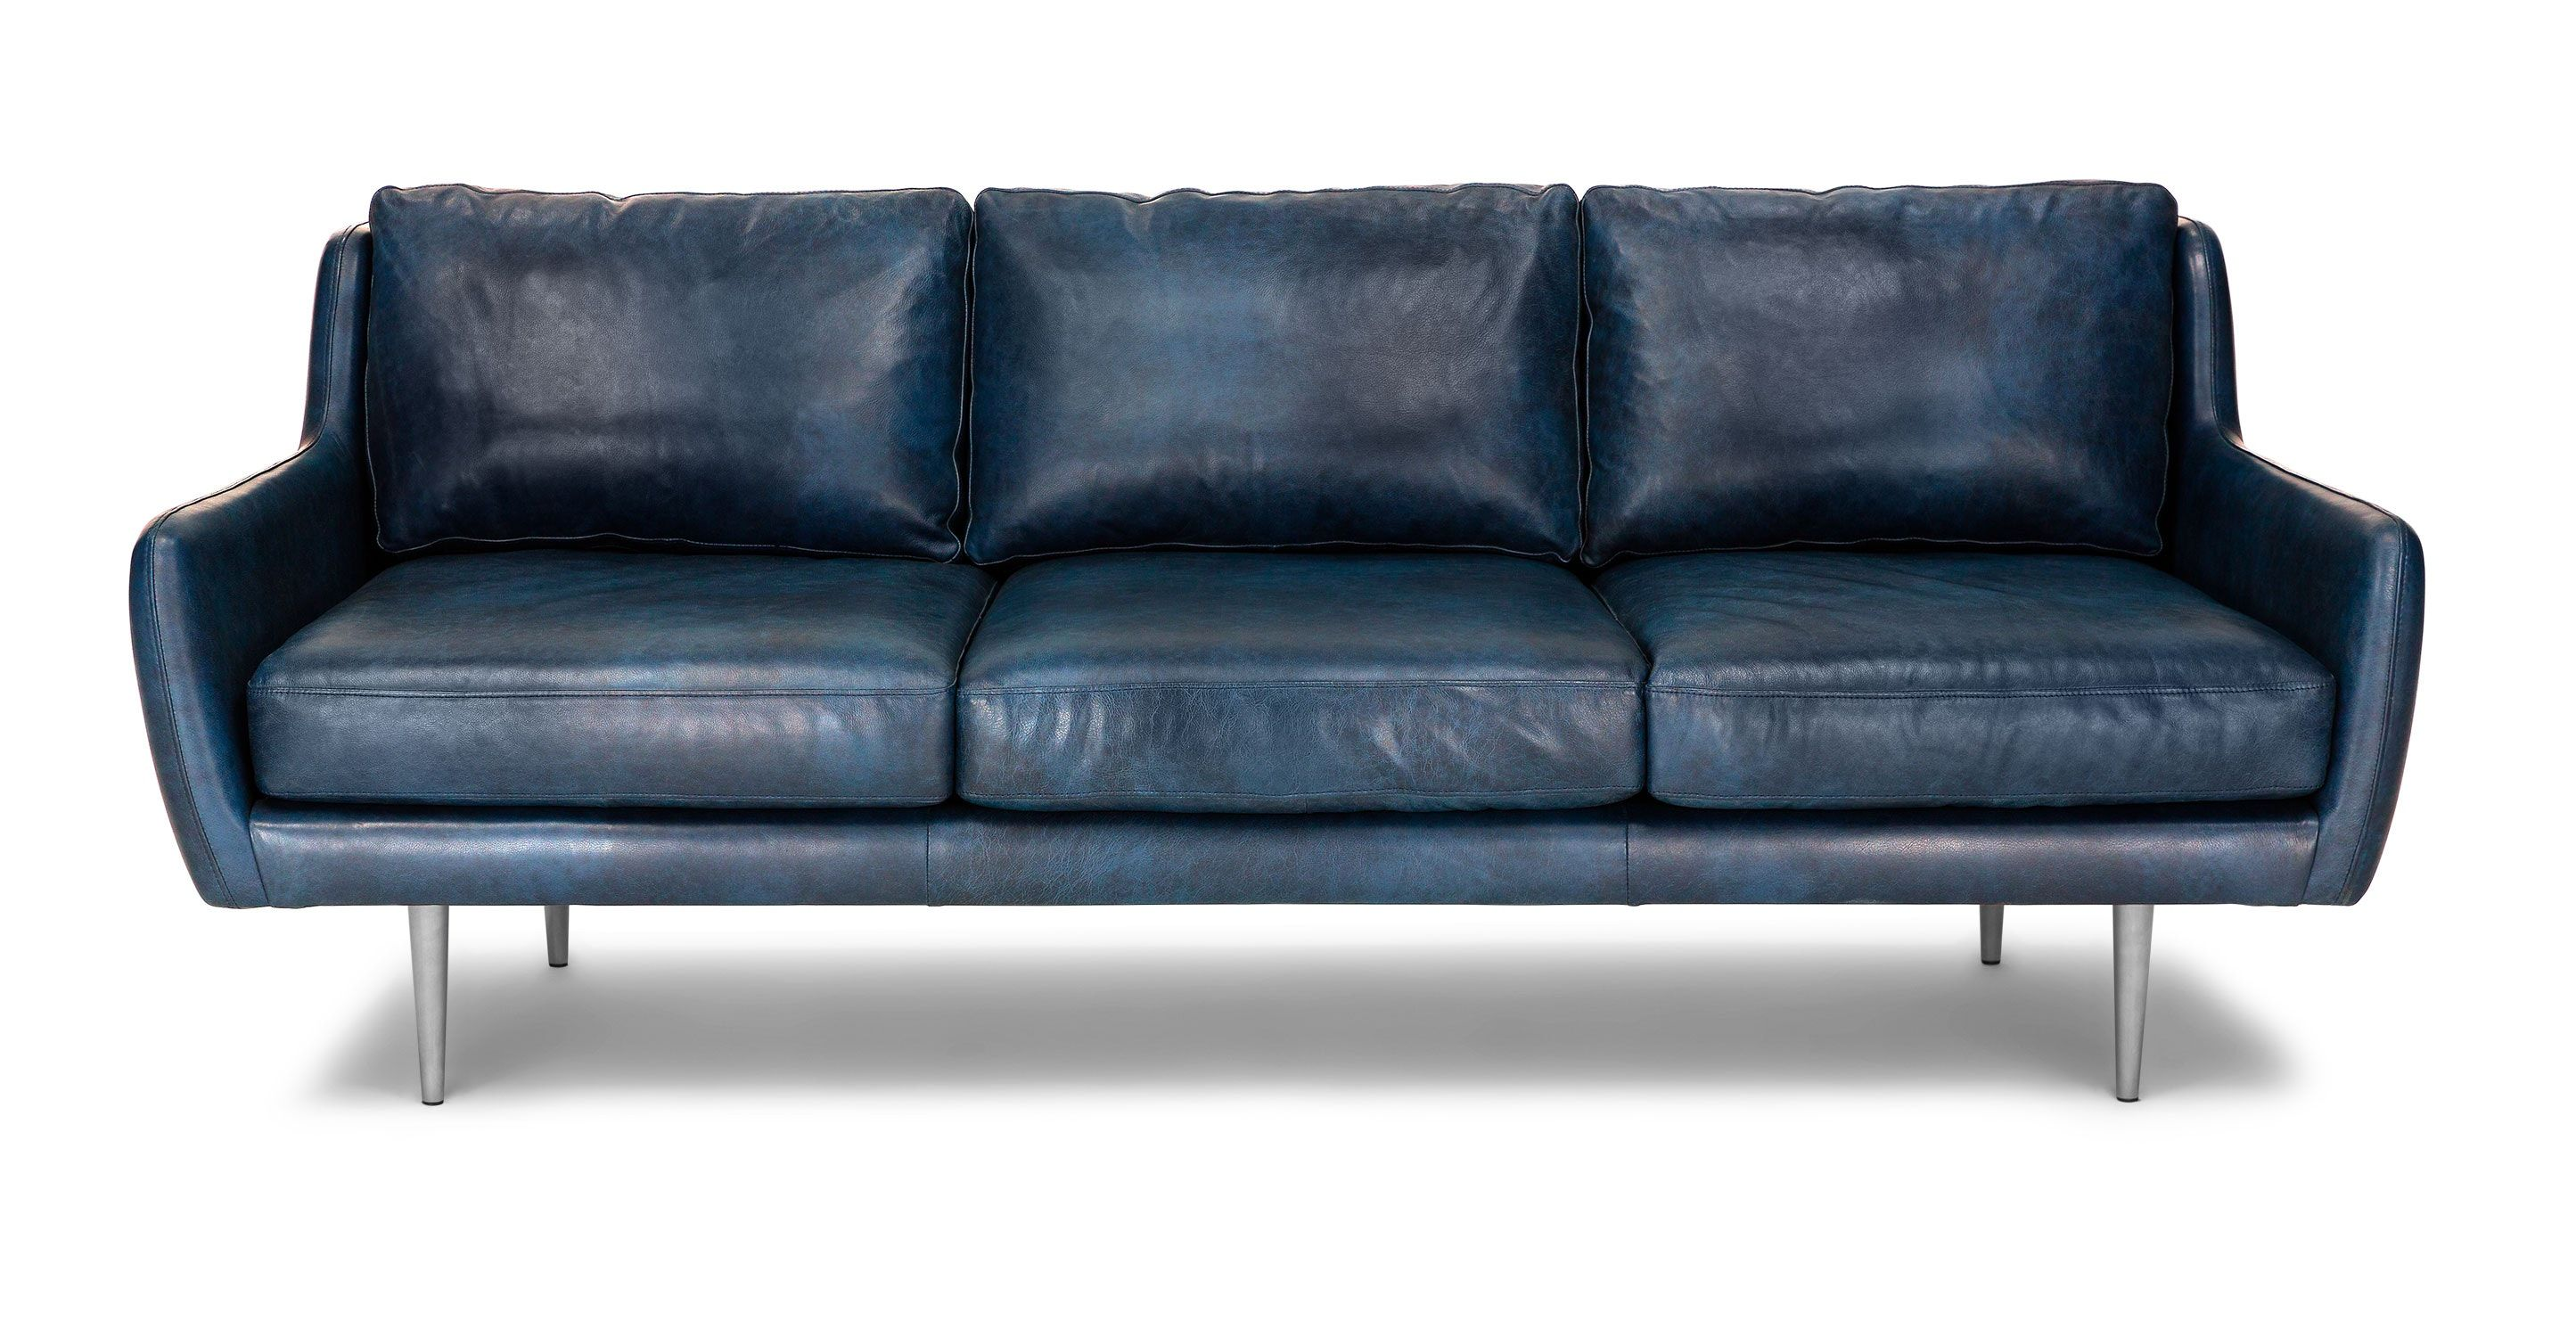 Matrix Oxford Blue Sofa From Article Sofa Deals Best Leather